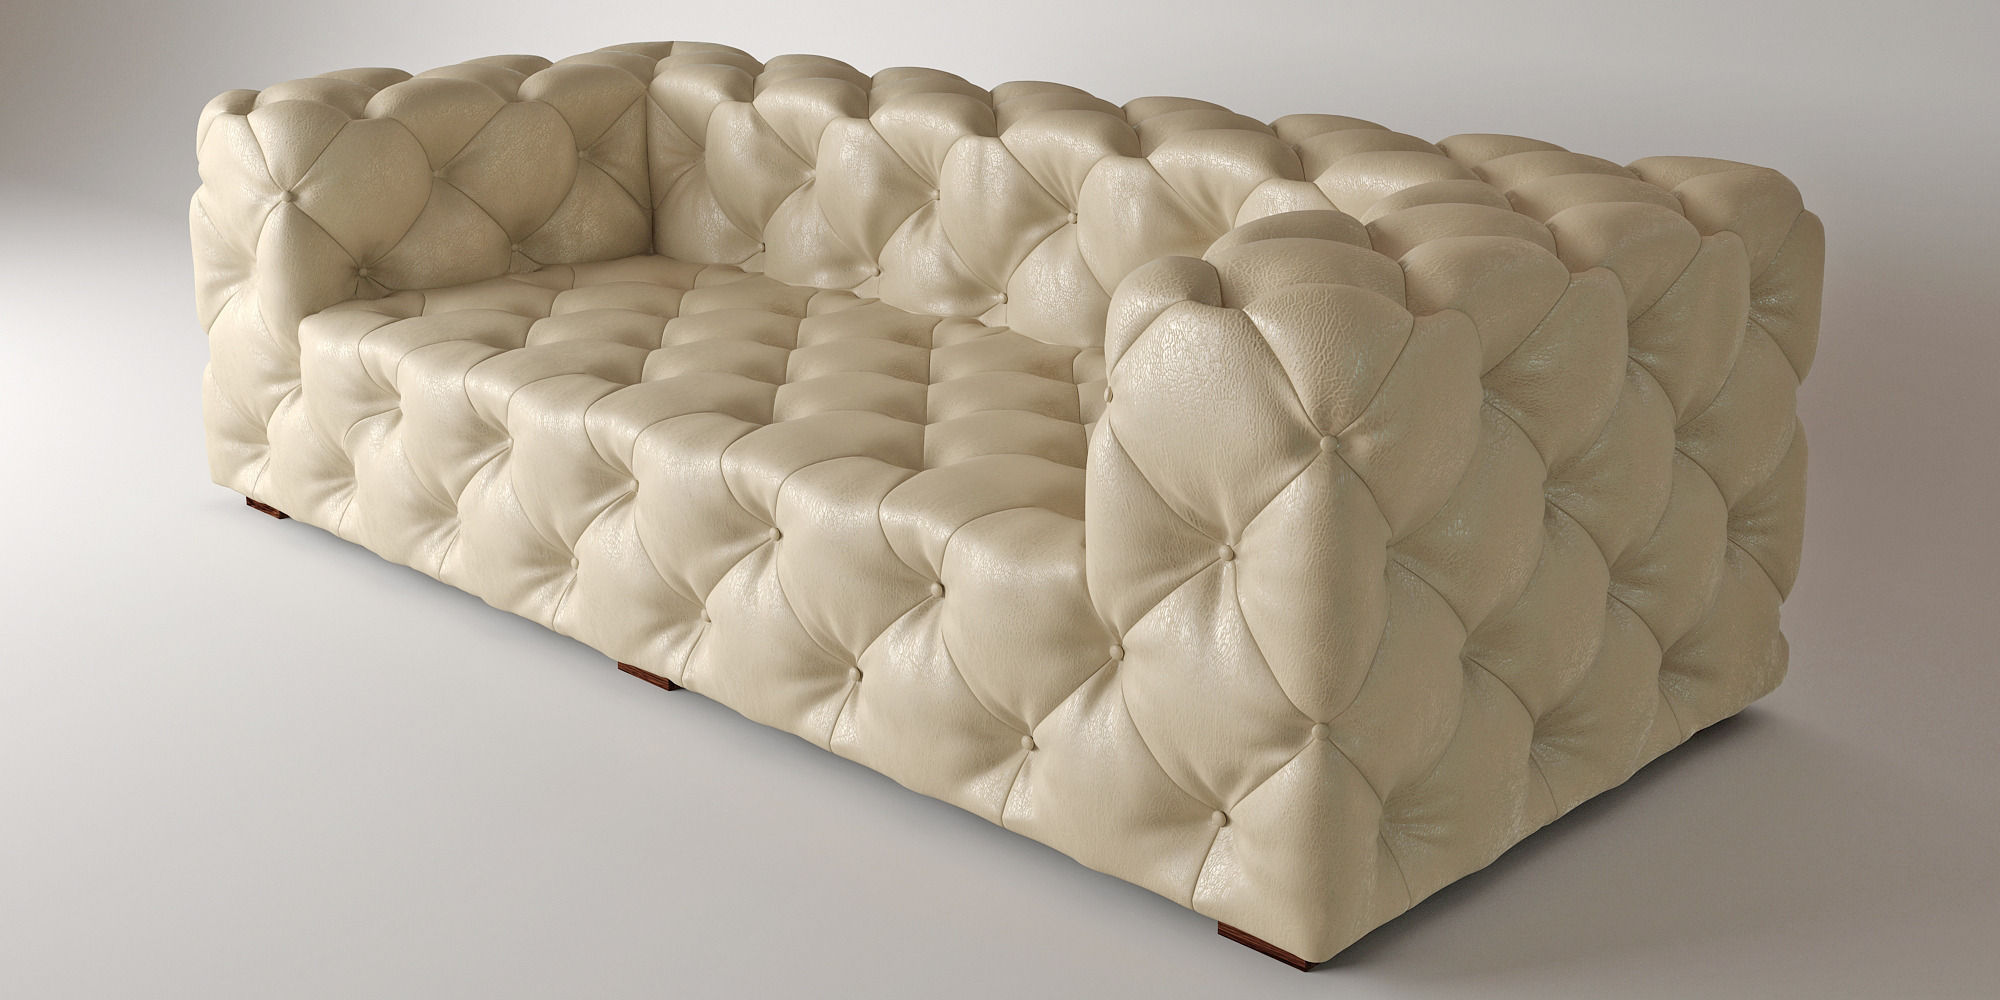 Soho Tufted Leather Sofa 3d Model Max Fbx 1 ...